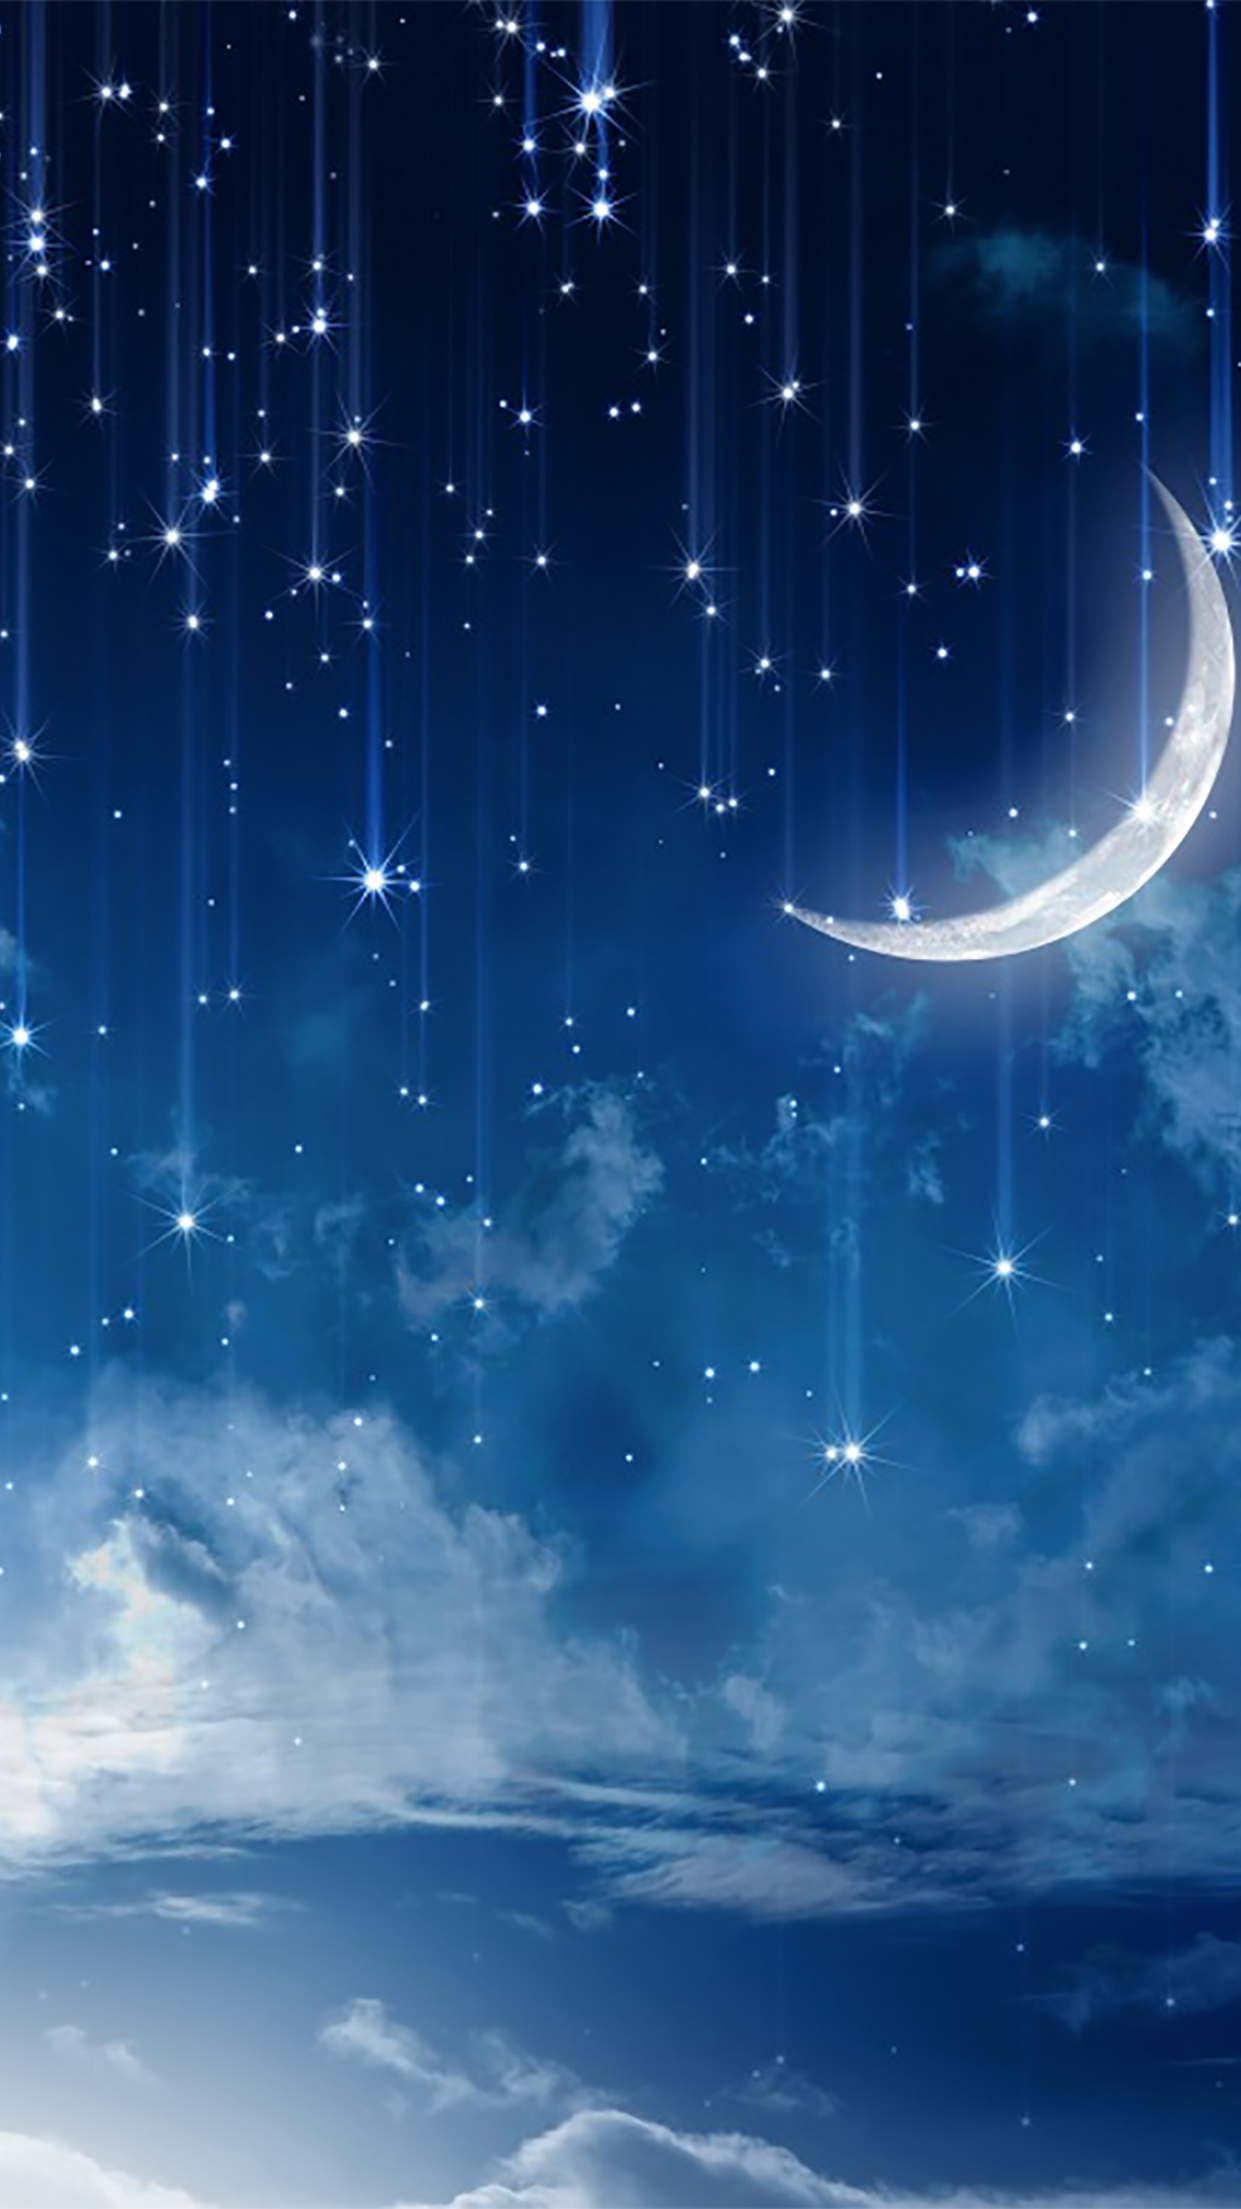 Cute Cartoon Nature Wallpapers Sky Sky With Stars And Moon Wallpaper For Iphone X 8 7